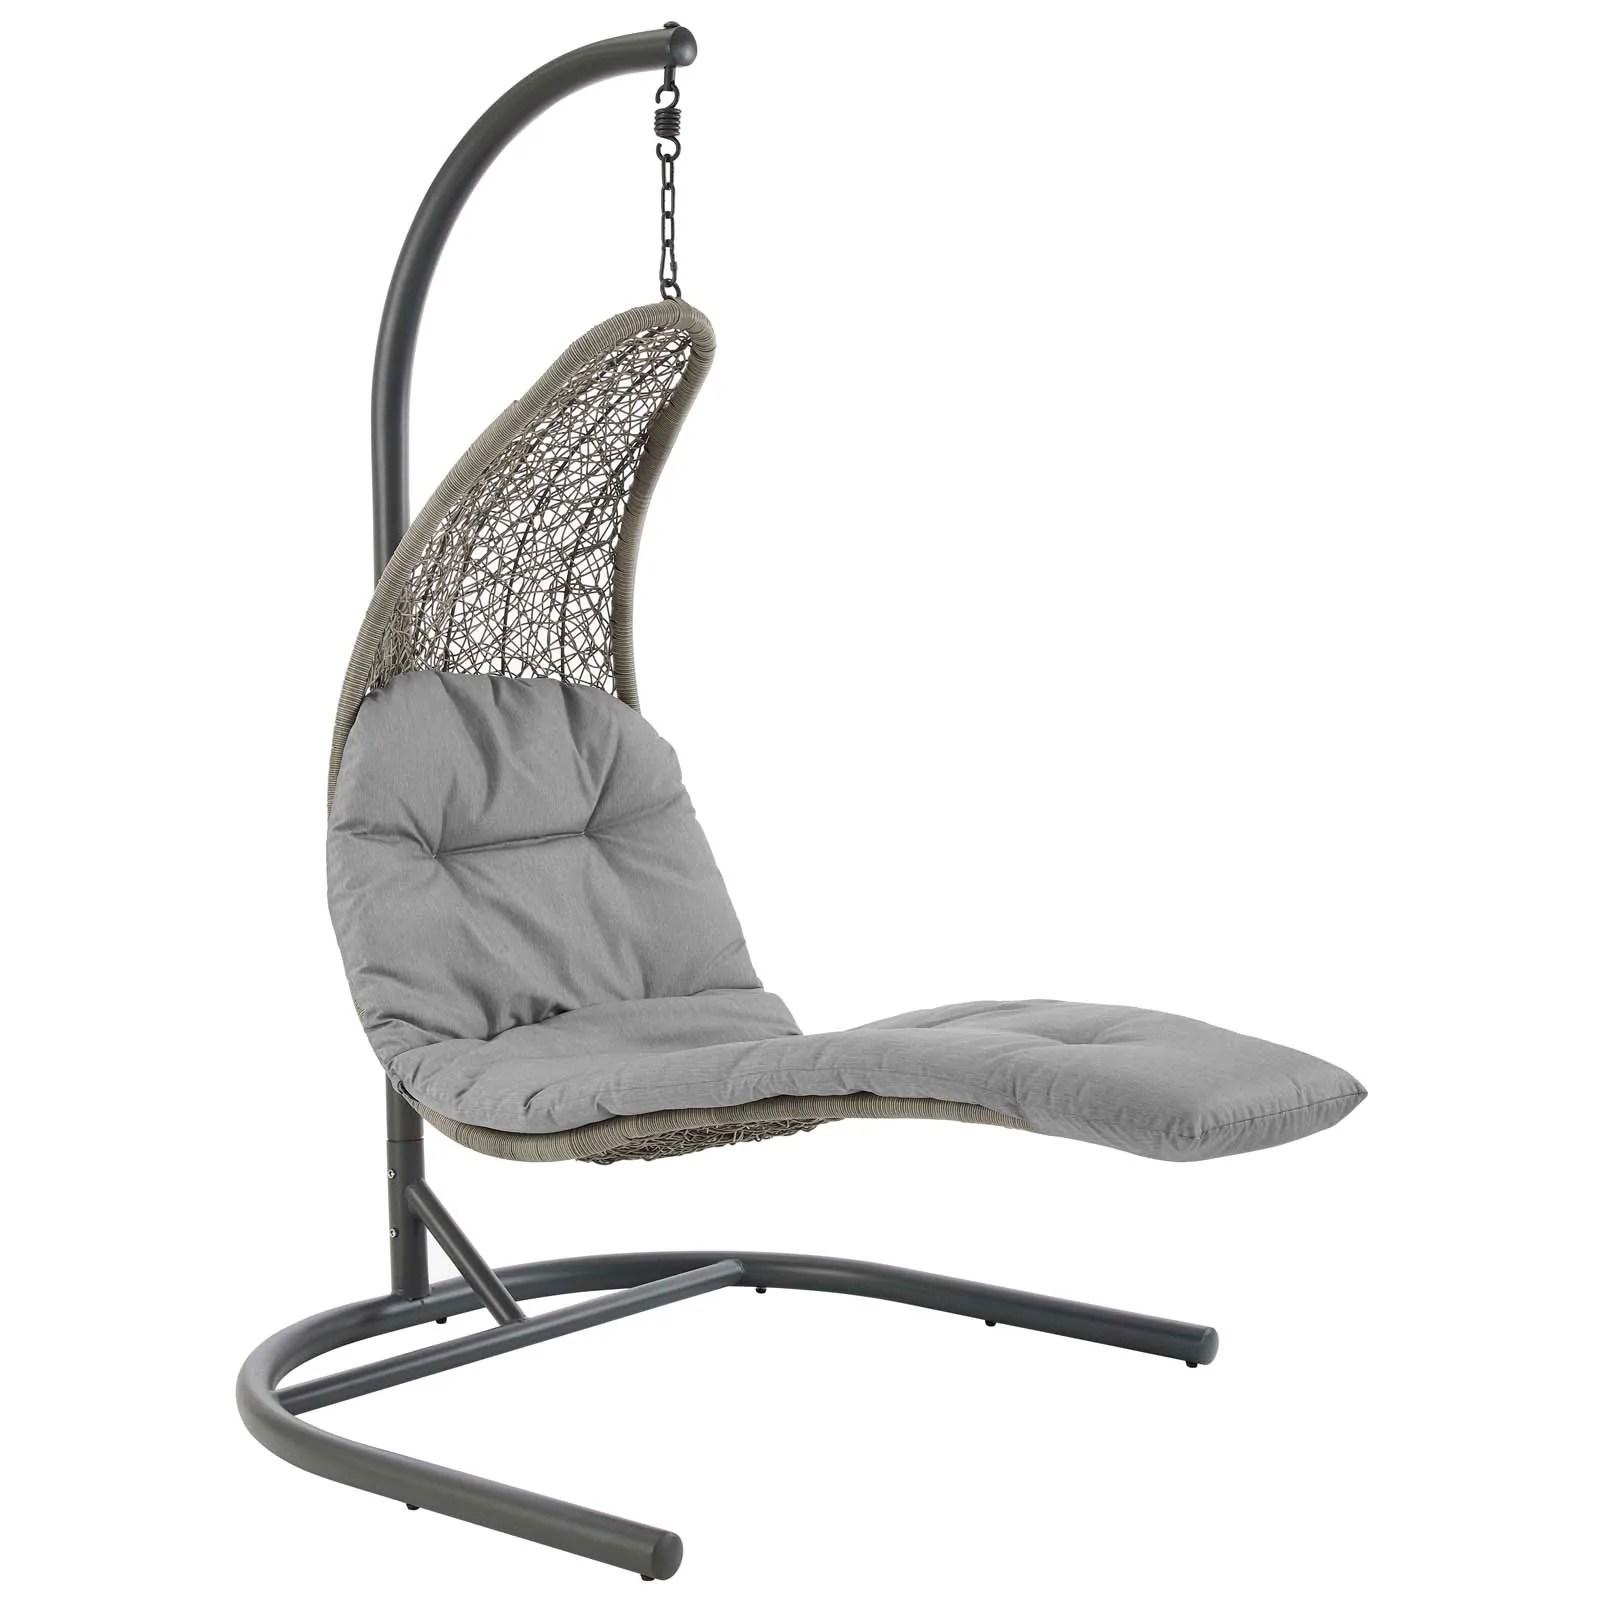 Hanging Chair Outdoor Modway Landscape Hanging Chaise Lounge Outdoor Patio Swing Chair Eei 2952